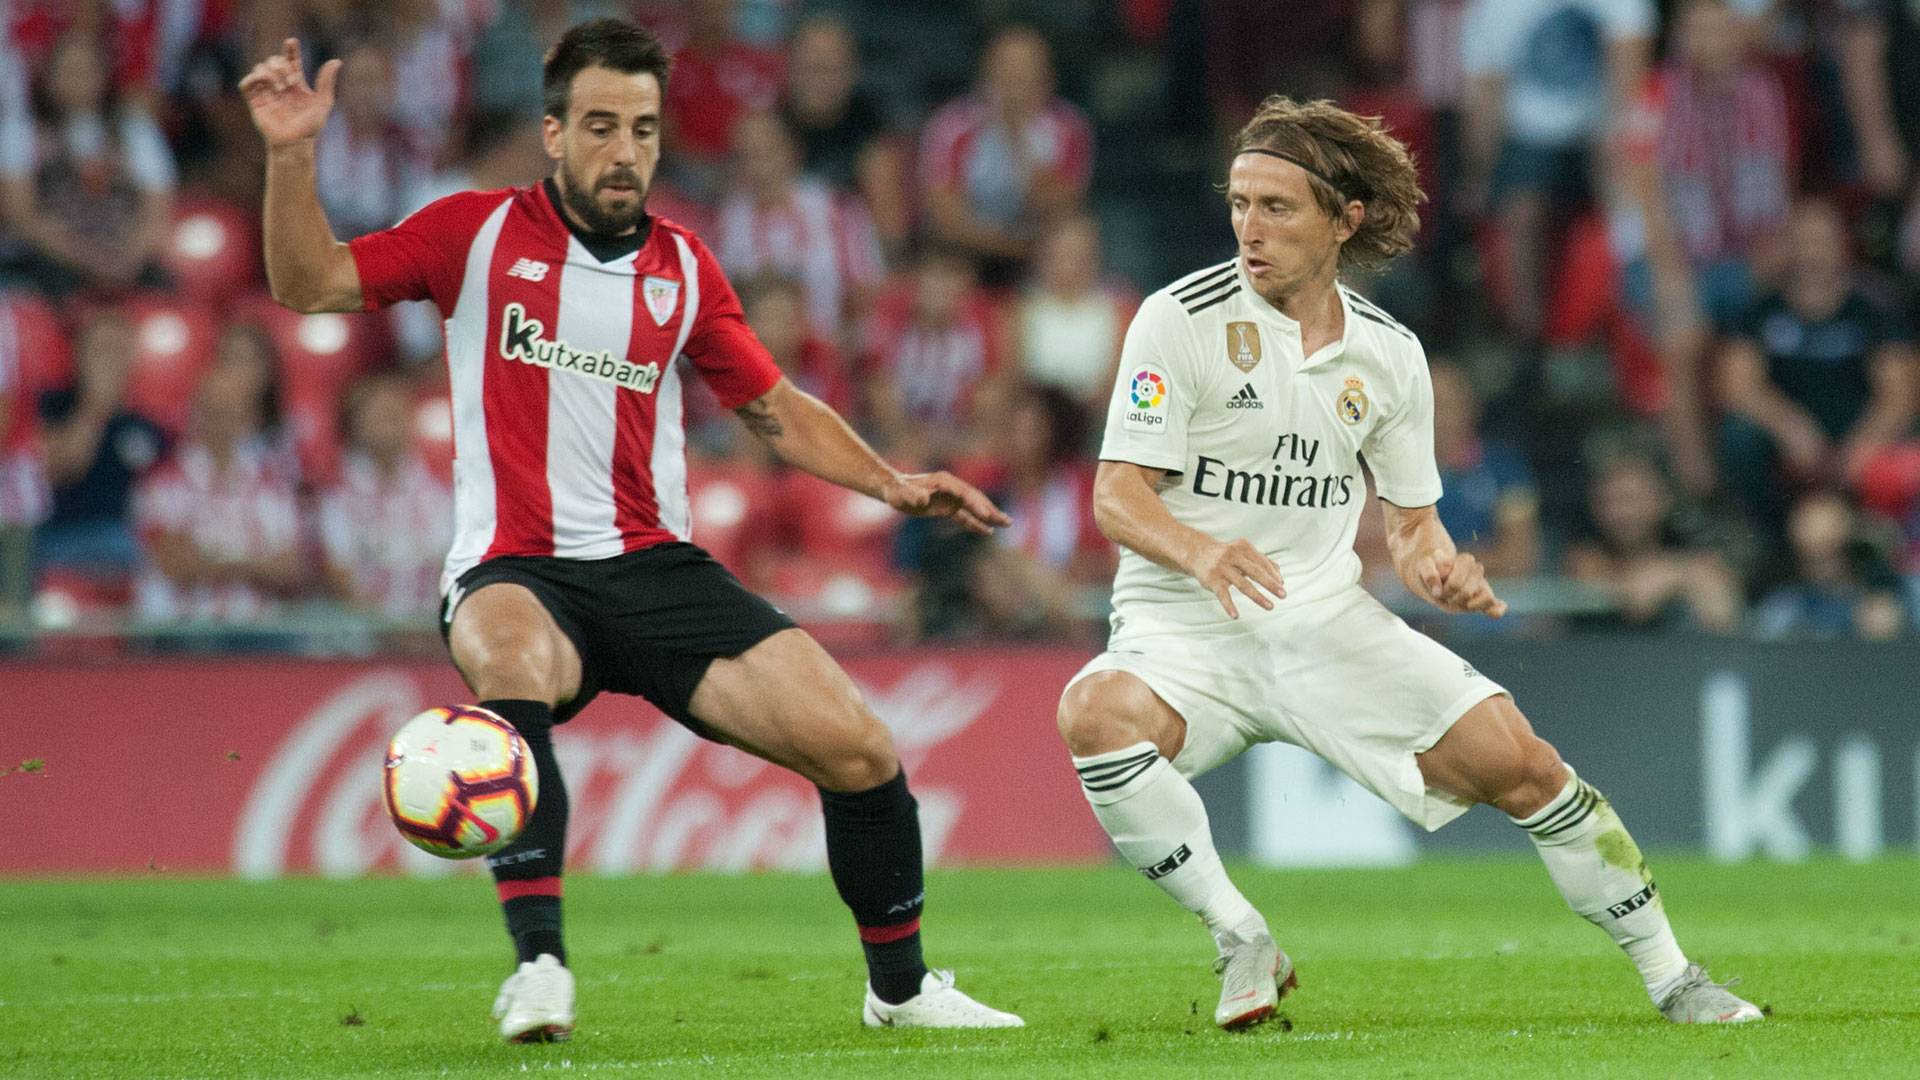 Entradas para el Real Madrid CF – Athletic Club